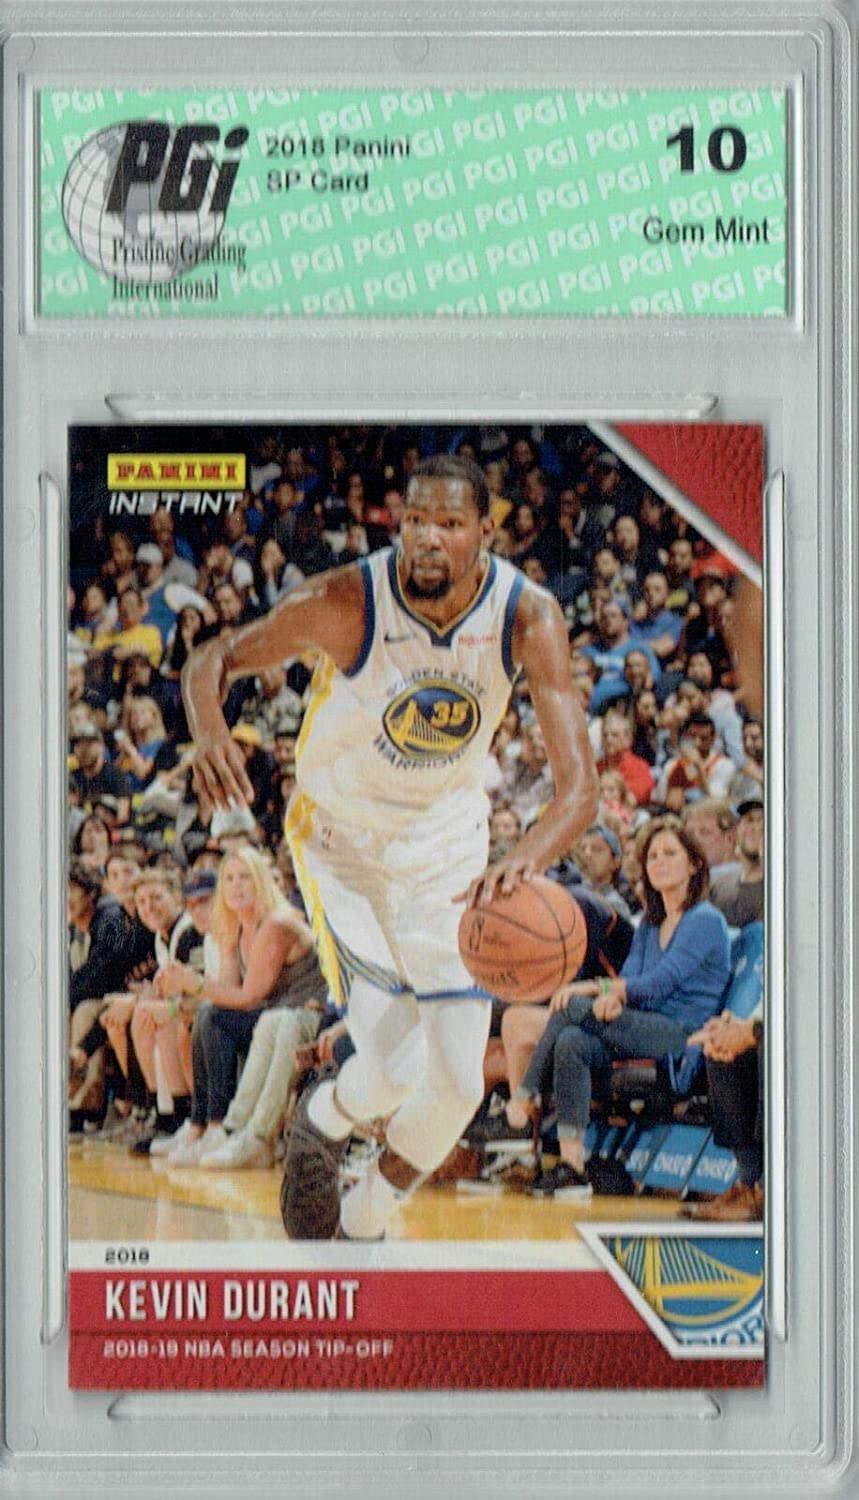 Kevin Durant 2018 Panini Tip-Off #5, 1 of 330 Made SSP Card PGI 10 - Unsigned Basketball Cards